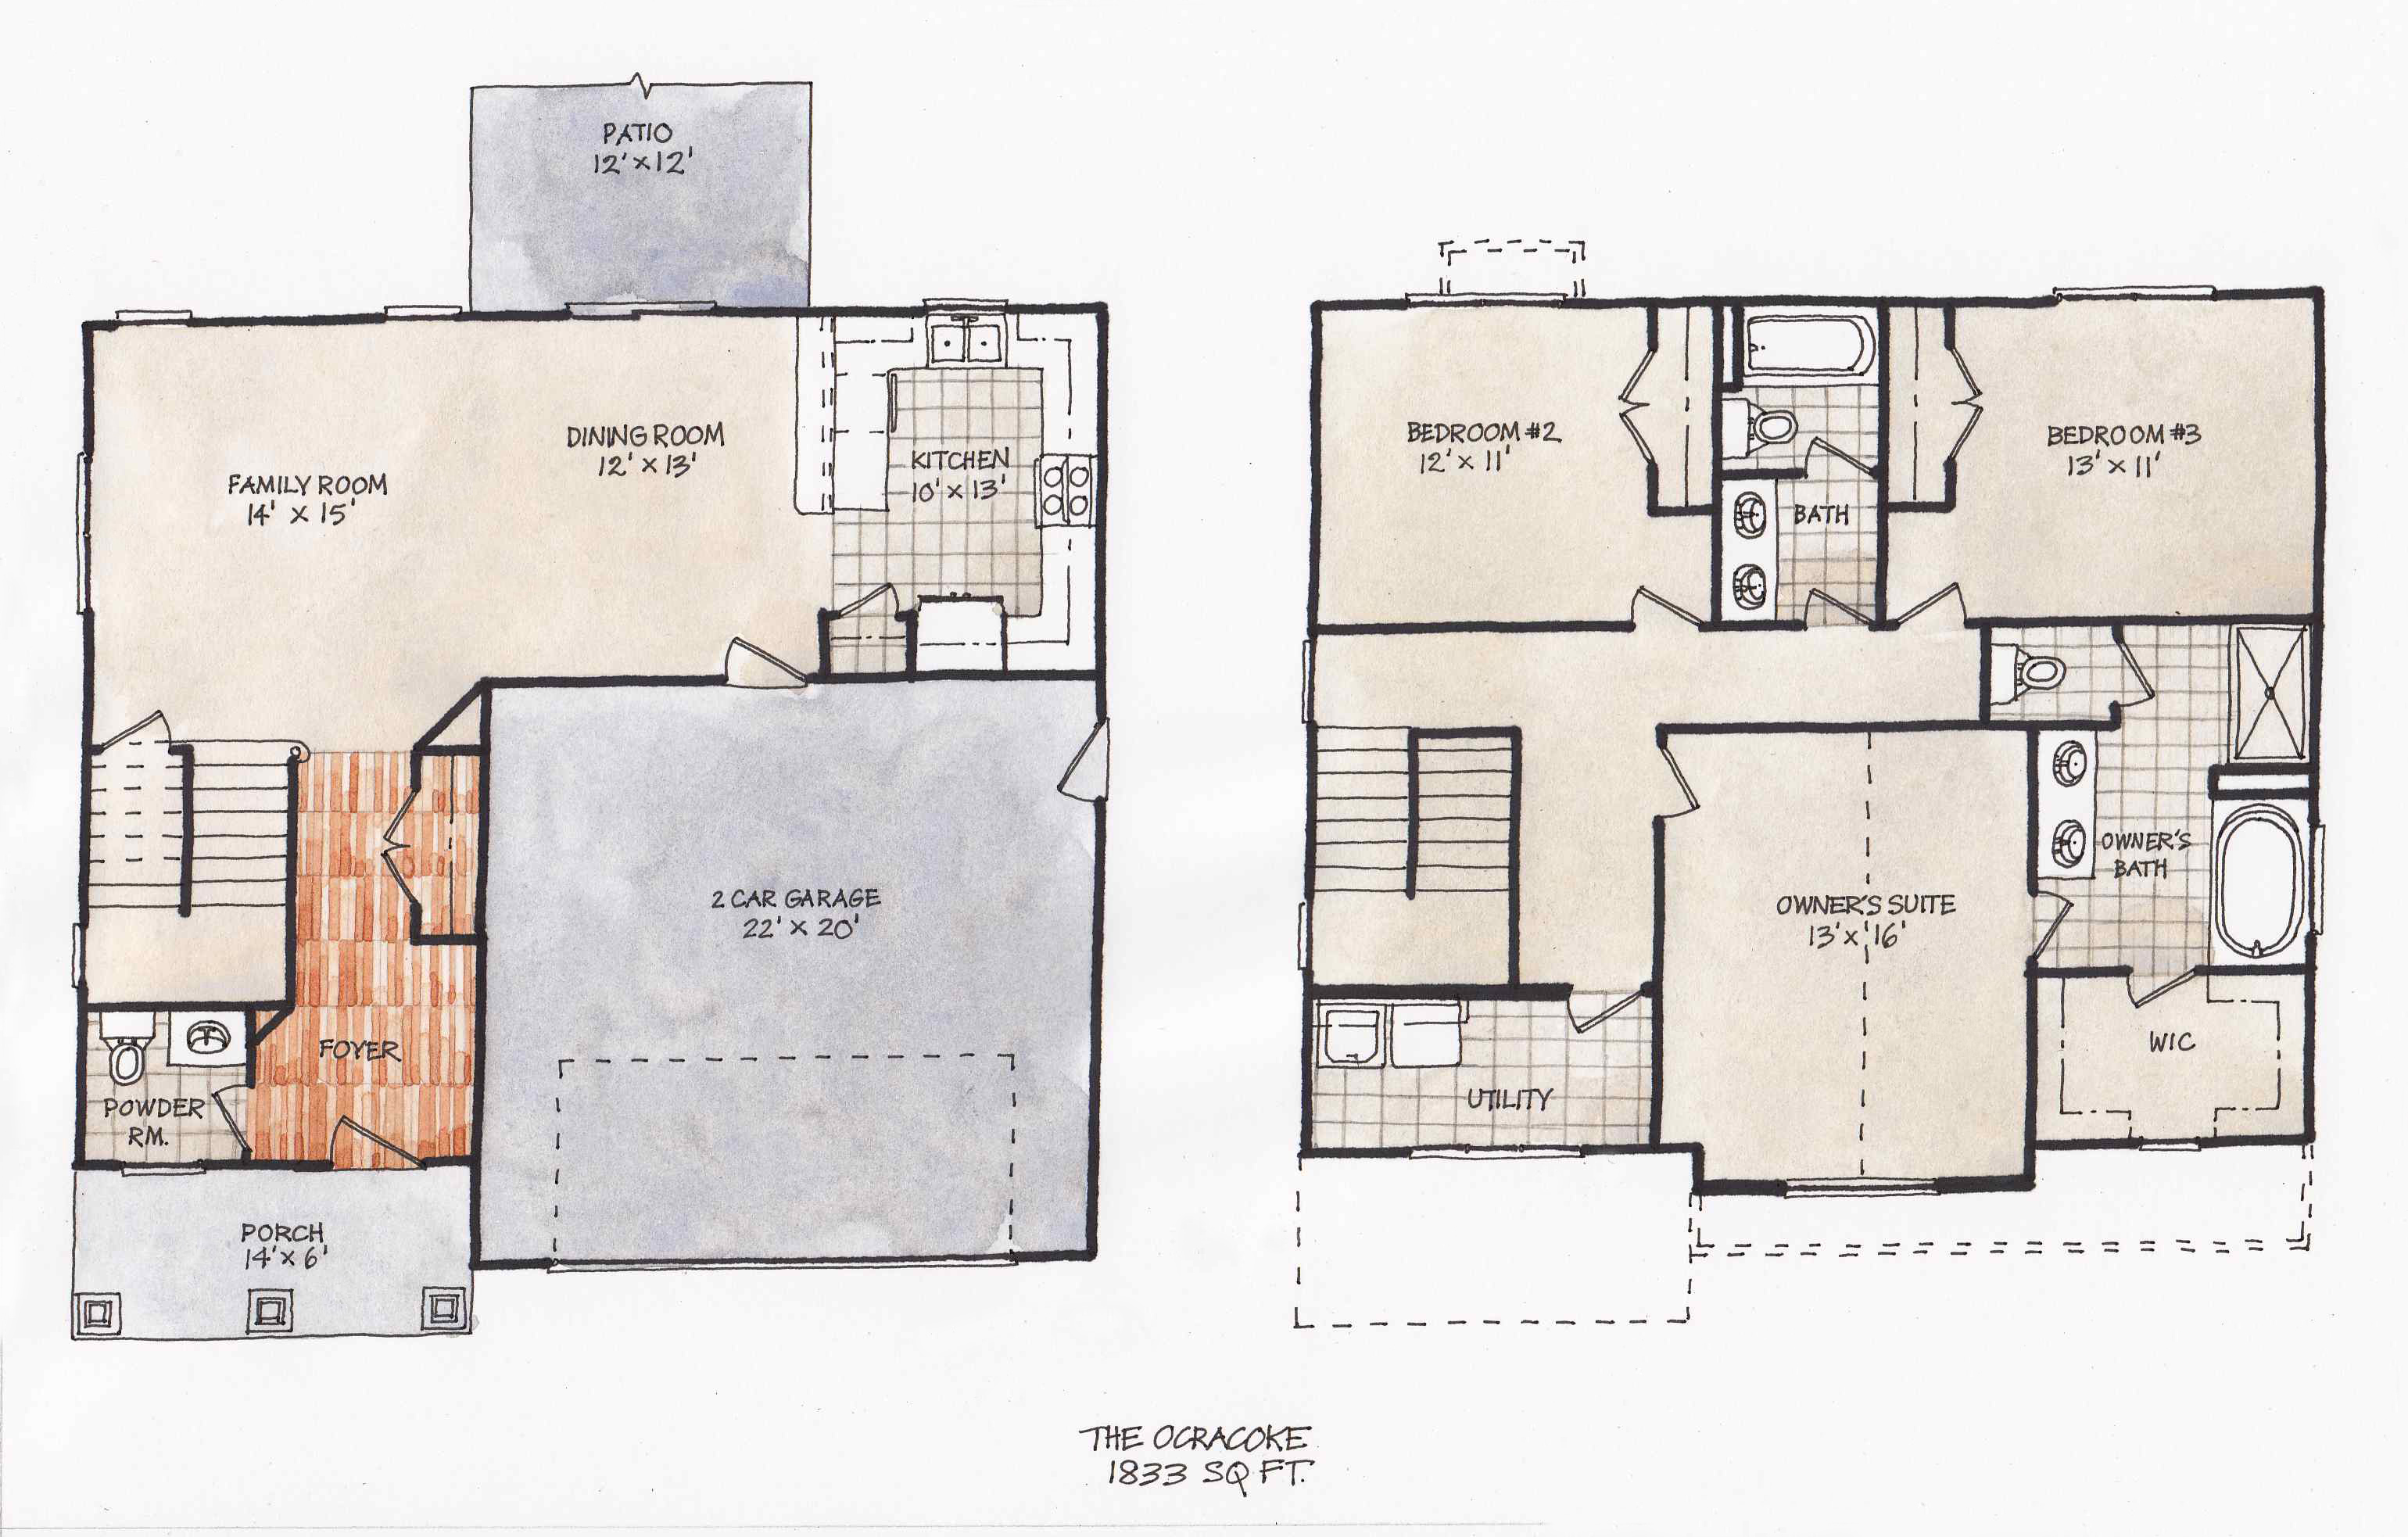 Home plans pyramid homes inc ask home design for Home planners inc house plans